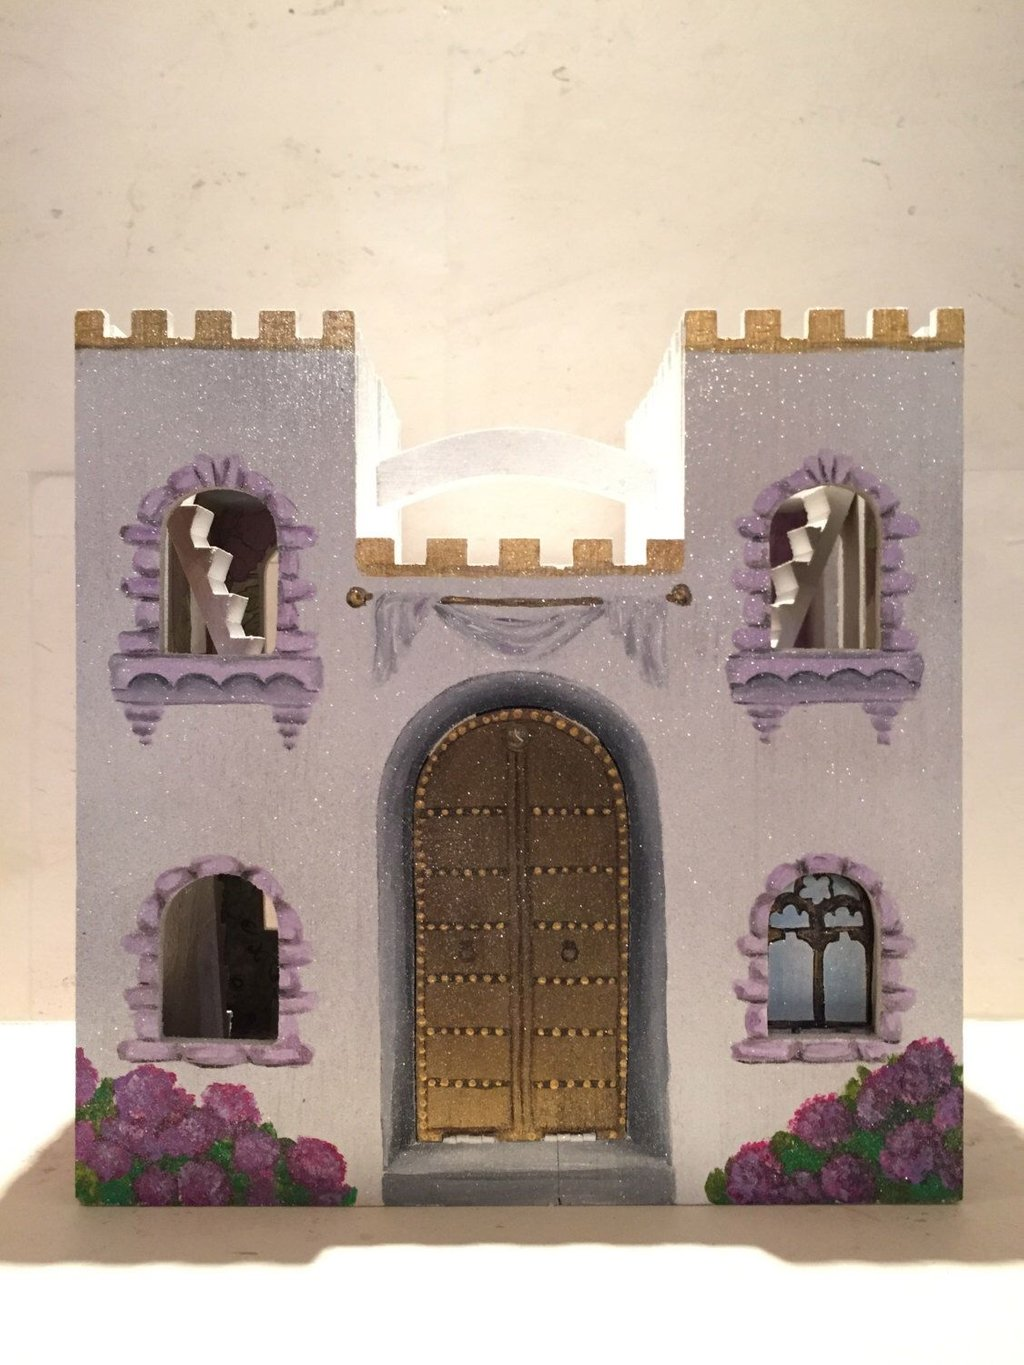 Castle Purple Princess Castle Toy Dollhouse Durability Of Kids Wooden Playhouse